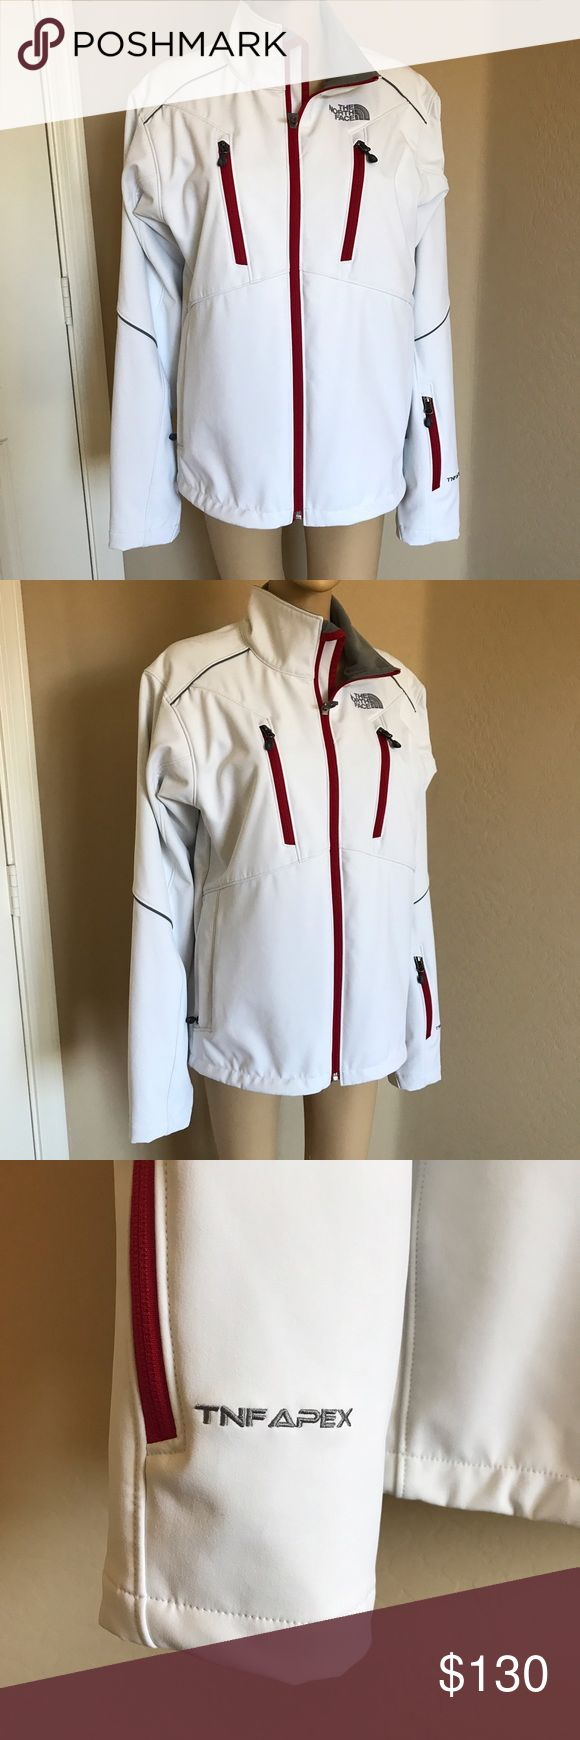 North Face TNK APEX Jacket Mens jacket, extremely warm with fleece trim on inside. View last photo for small stain, barely noticeable & you may be able to remove with stain removing spray. The North Face Jackets & Coats Performance Jackets